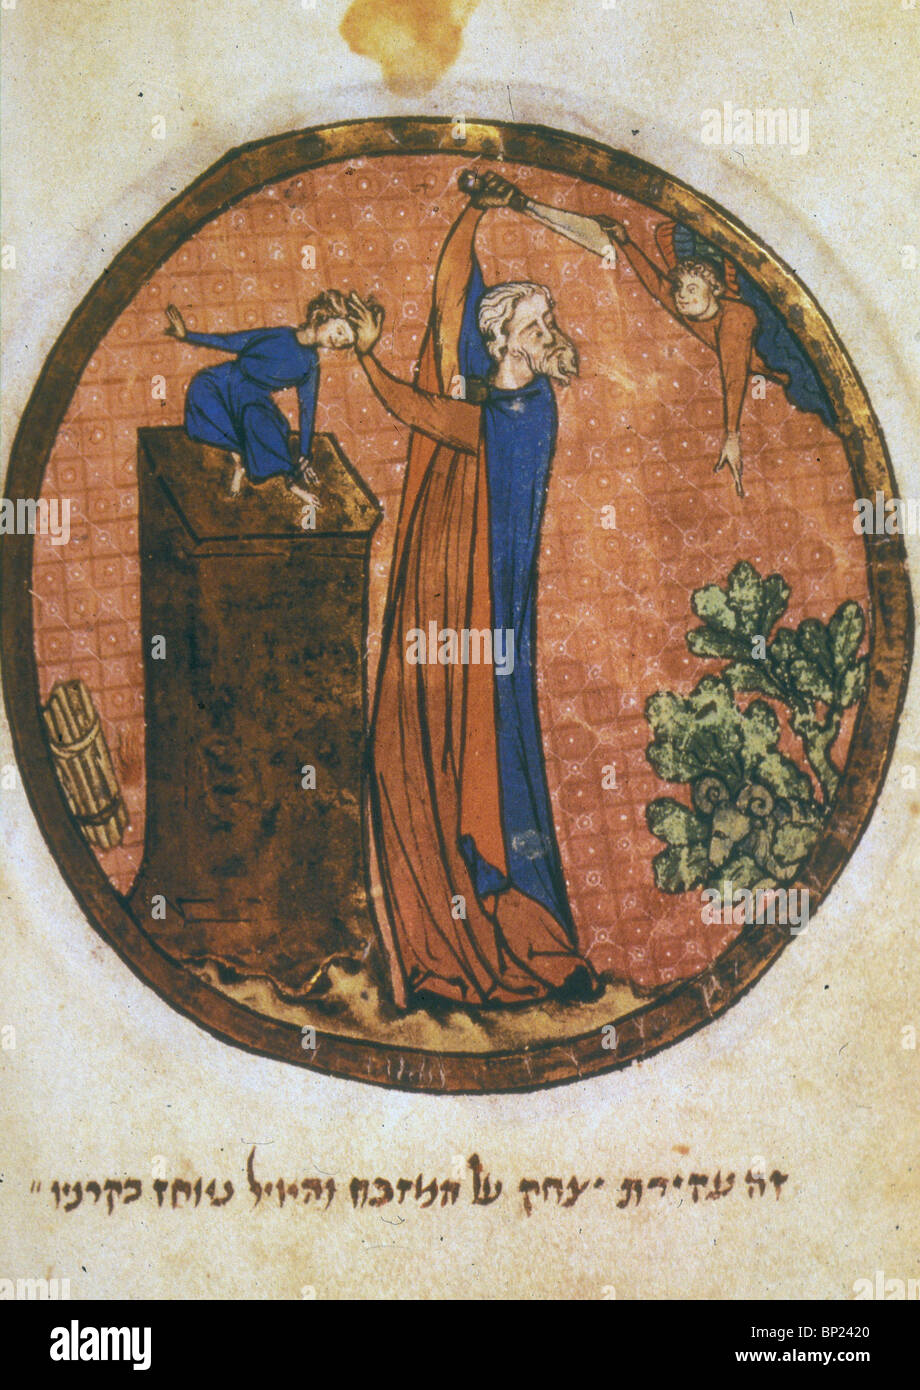 351. ABRAHAM'S SACRIFICE OF ISAAC, HEBREW MANUSCRIPT FROM NORTH FRANCE, C. 1280 - Stock Image